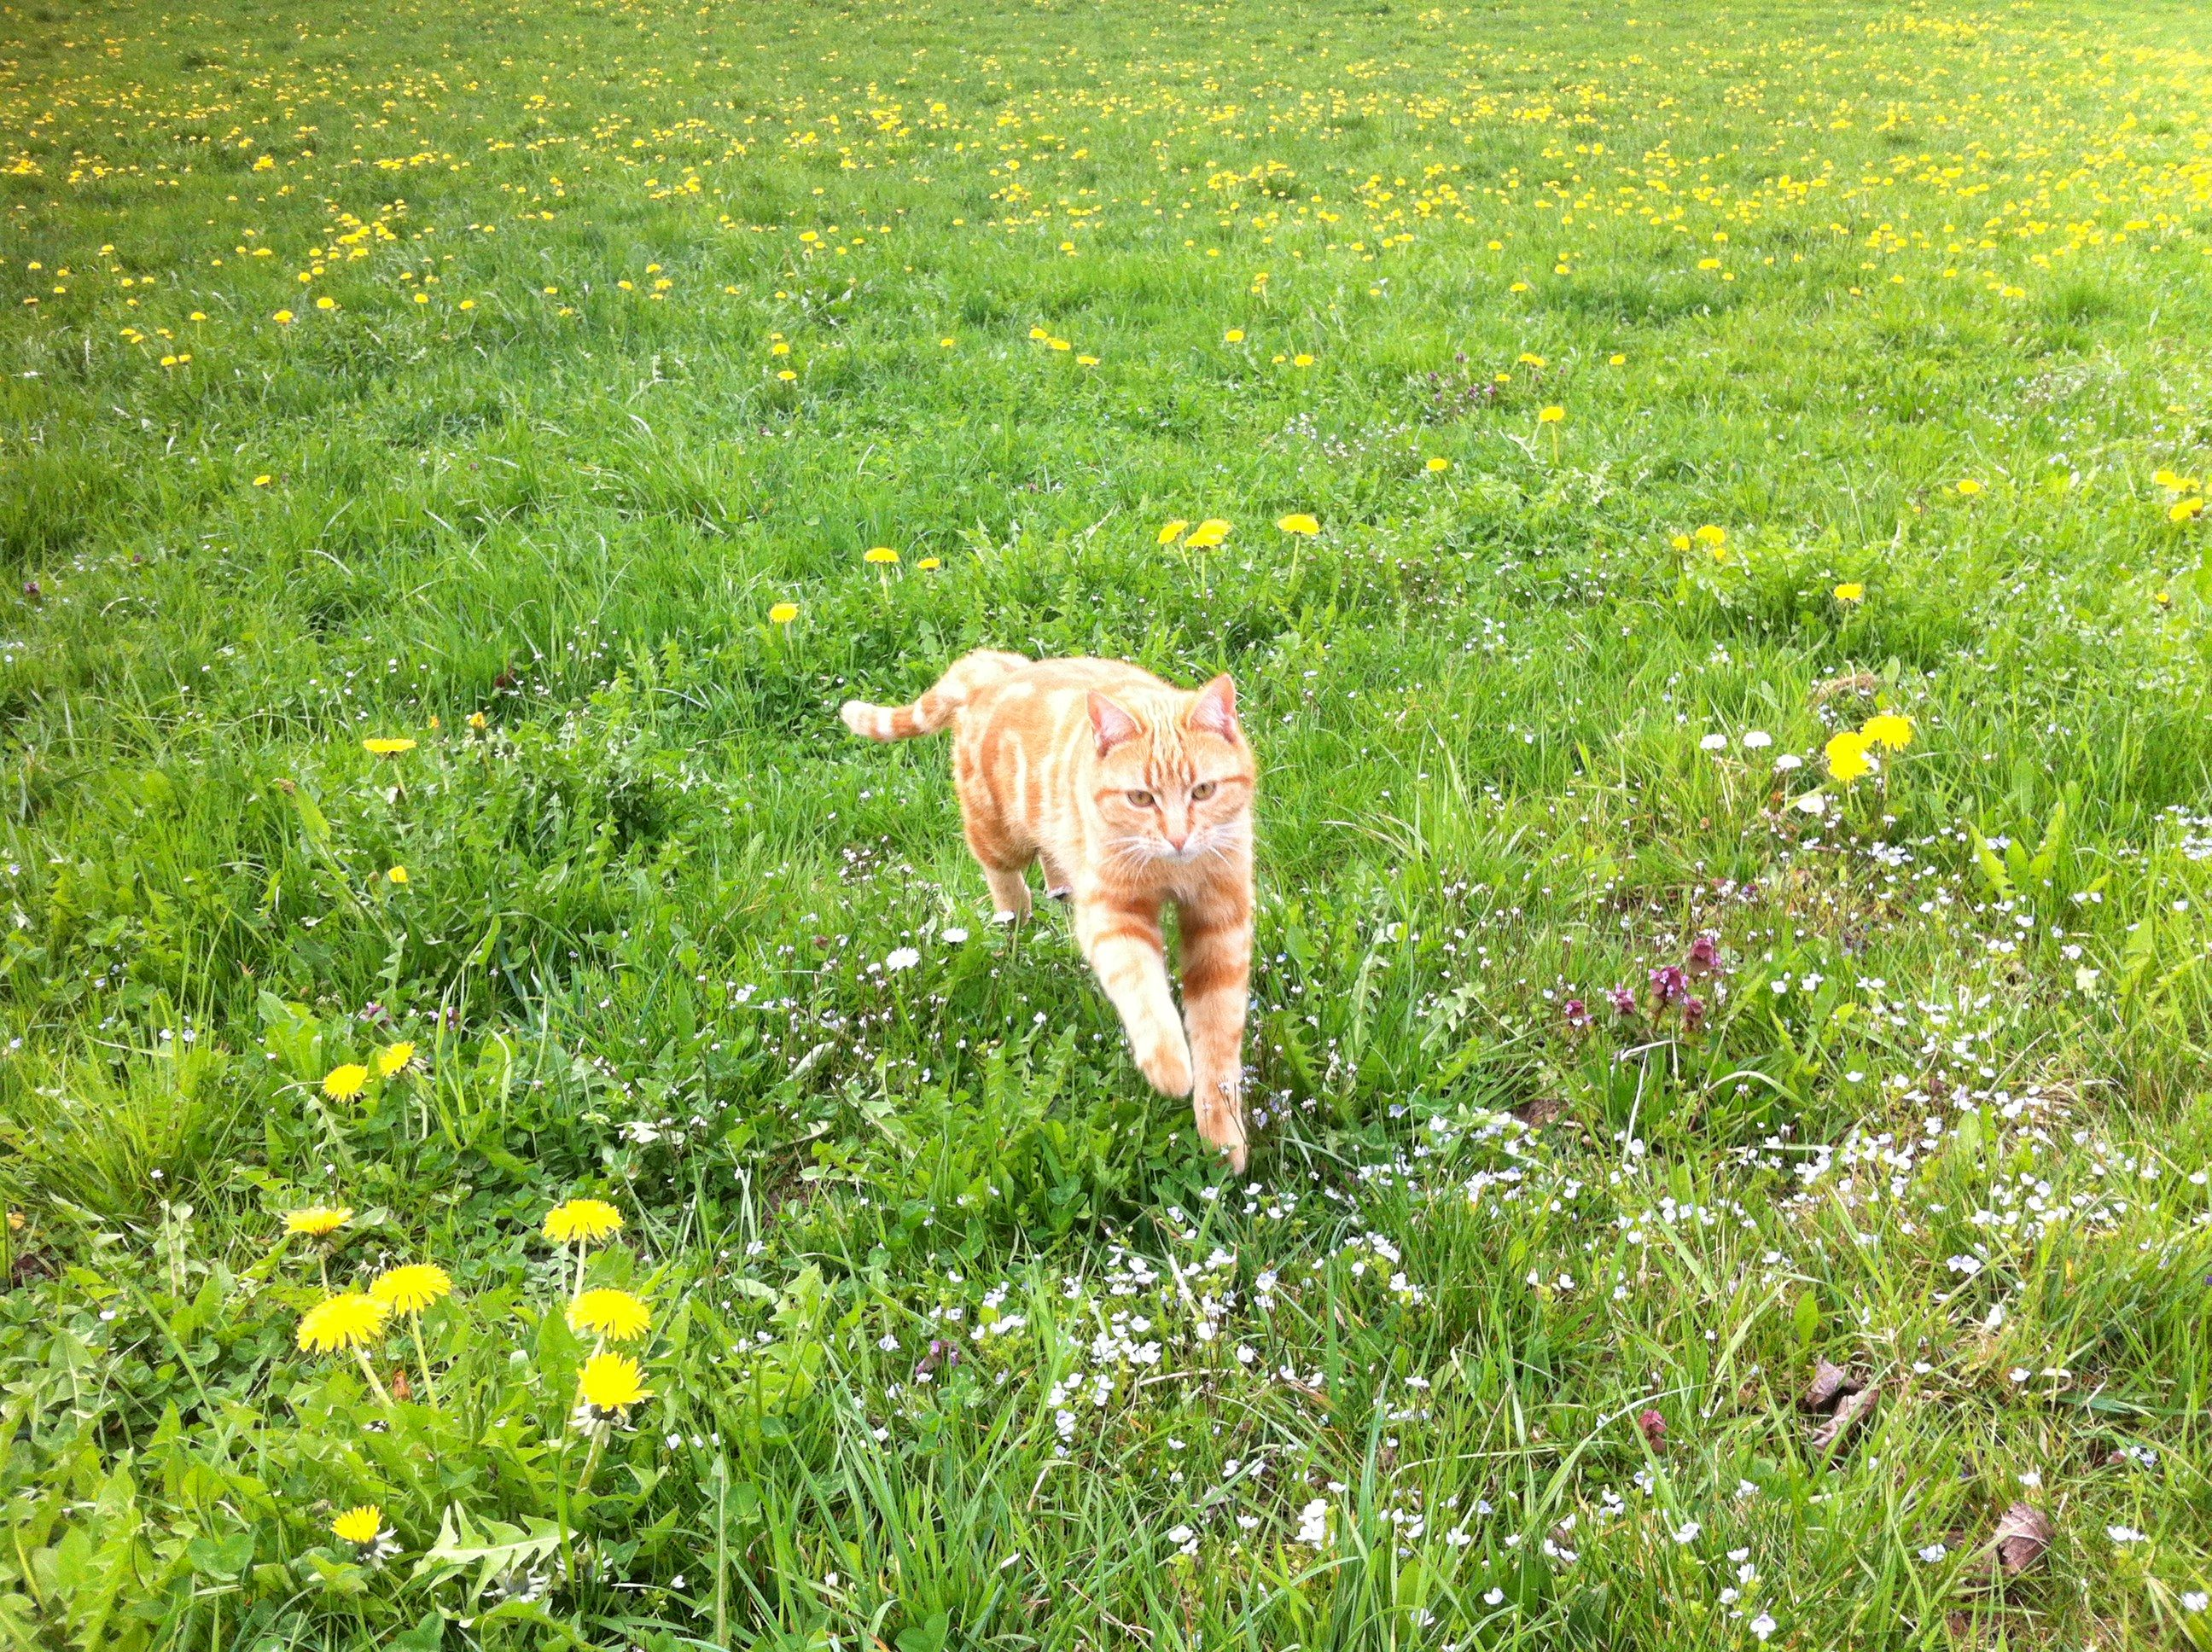 Tiere (1)